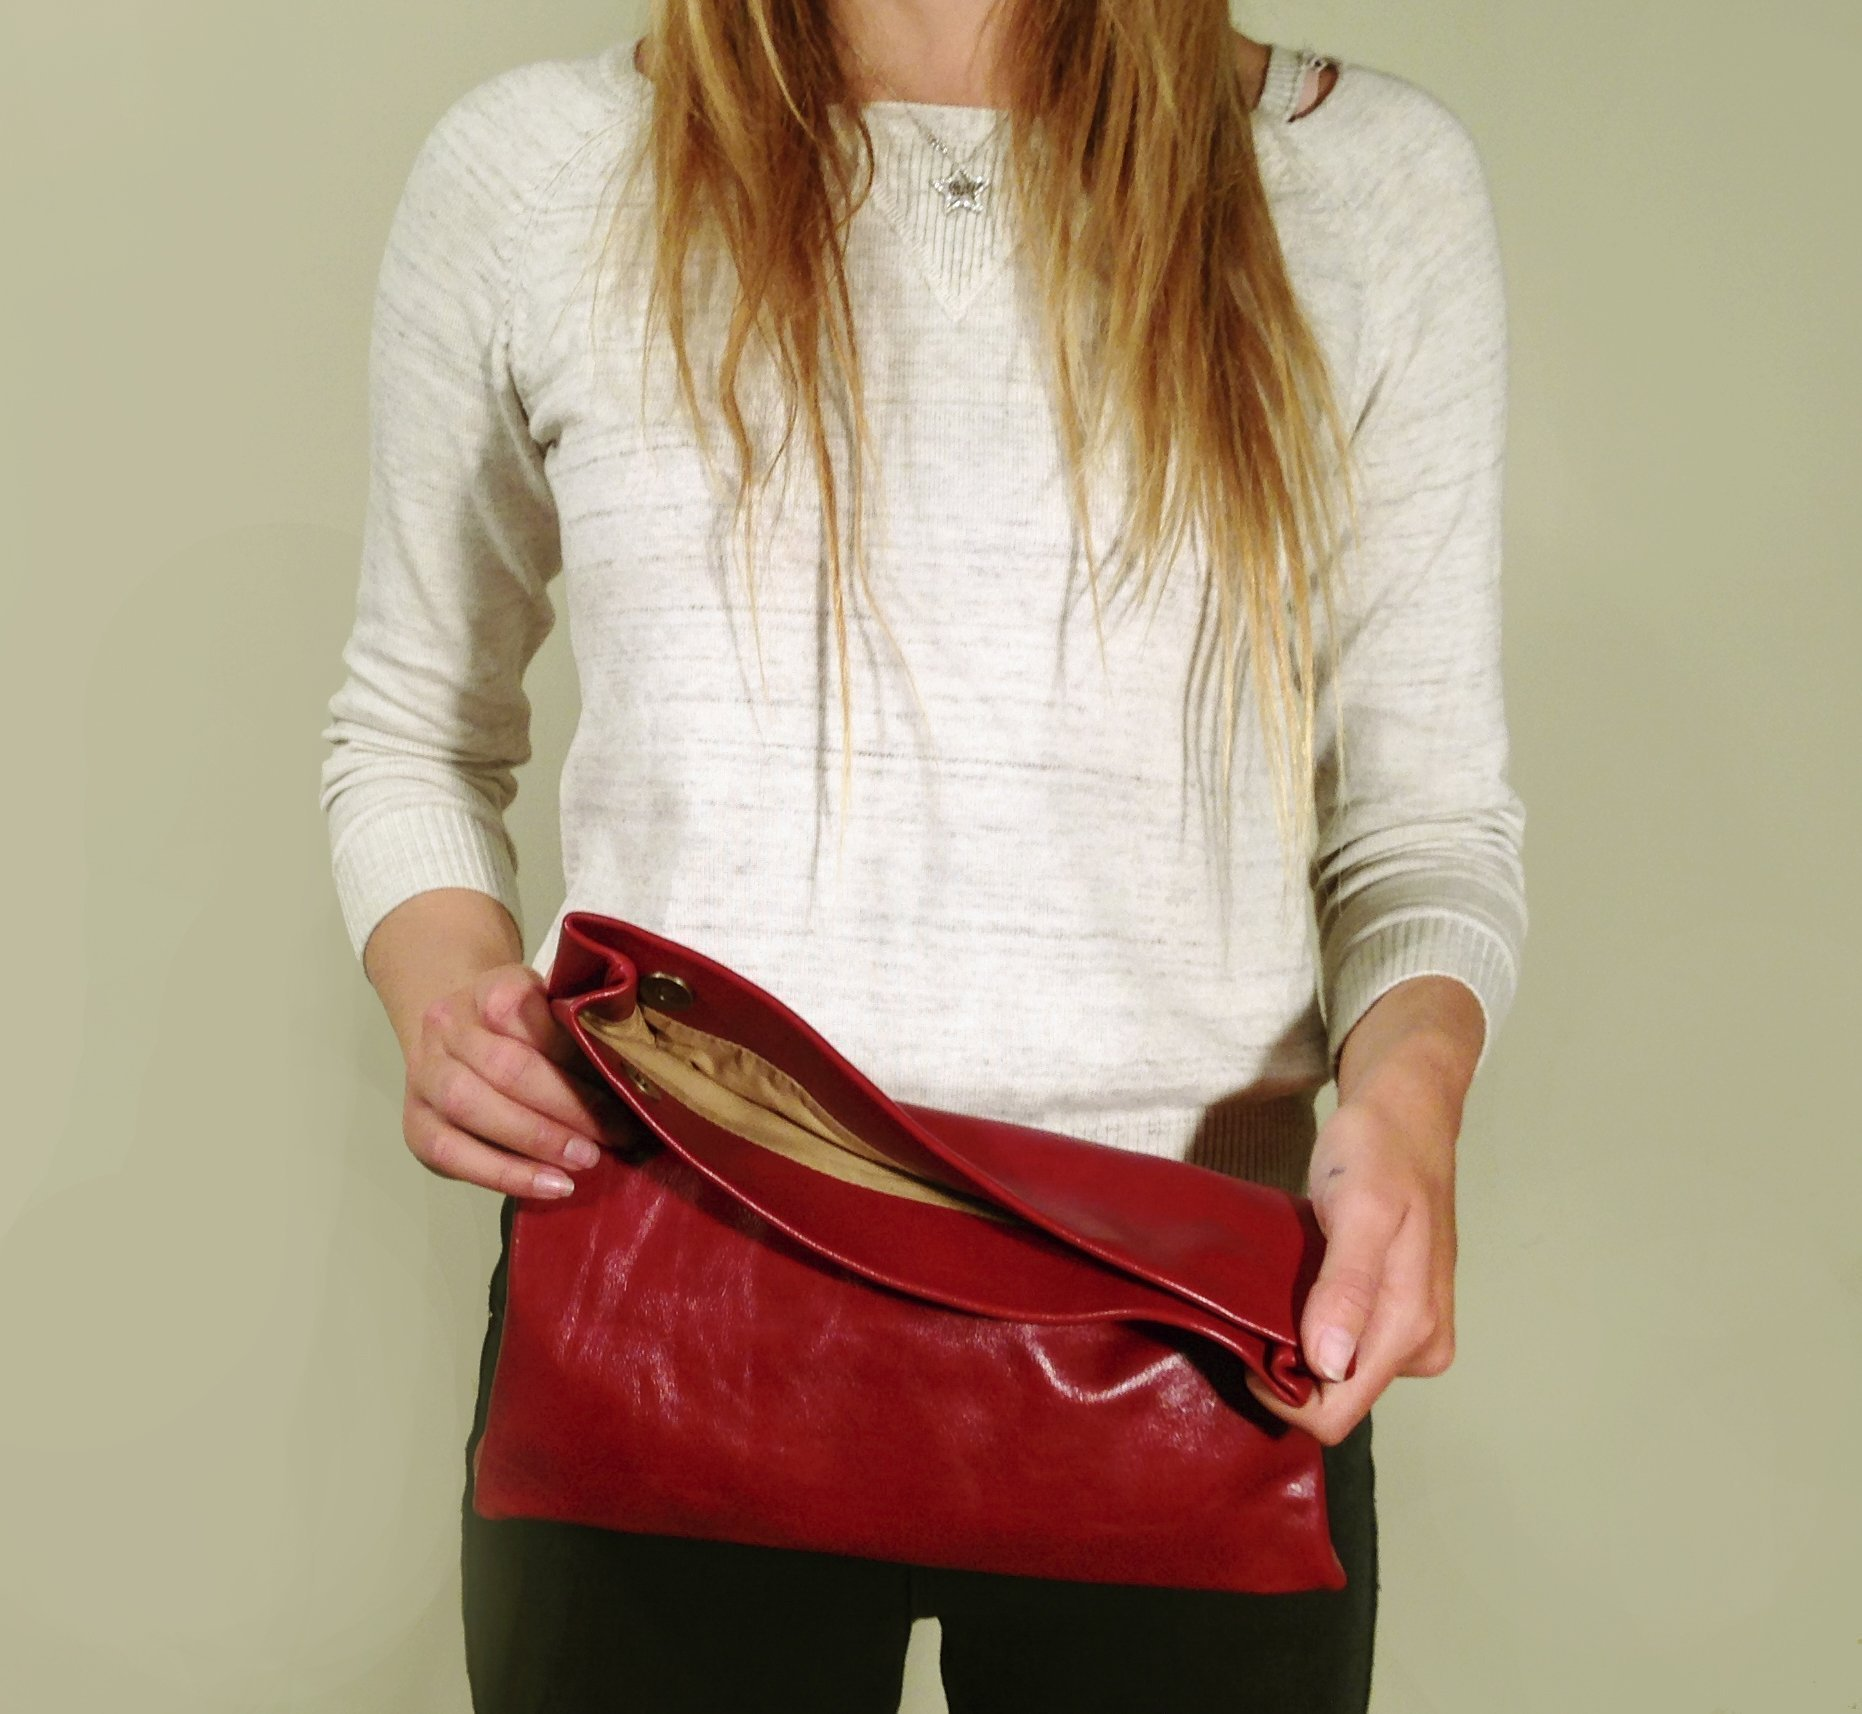 Foldover Glossy Deep Red Leather Clutch purse Handbag bag Shoulder handbag Opt: crossbody strap